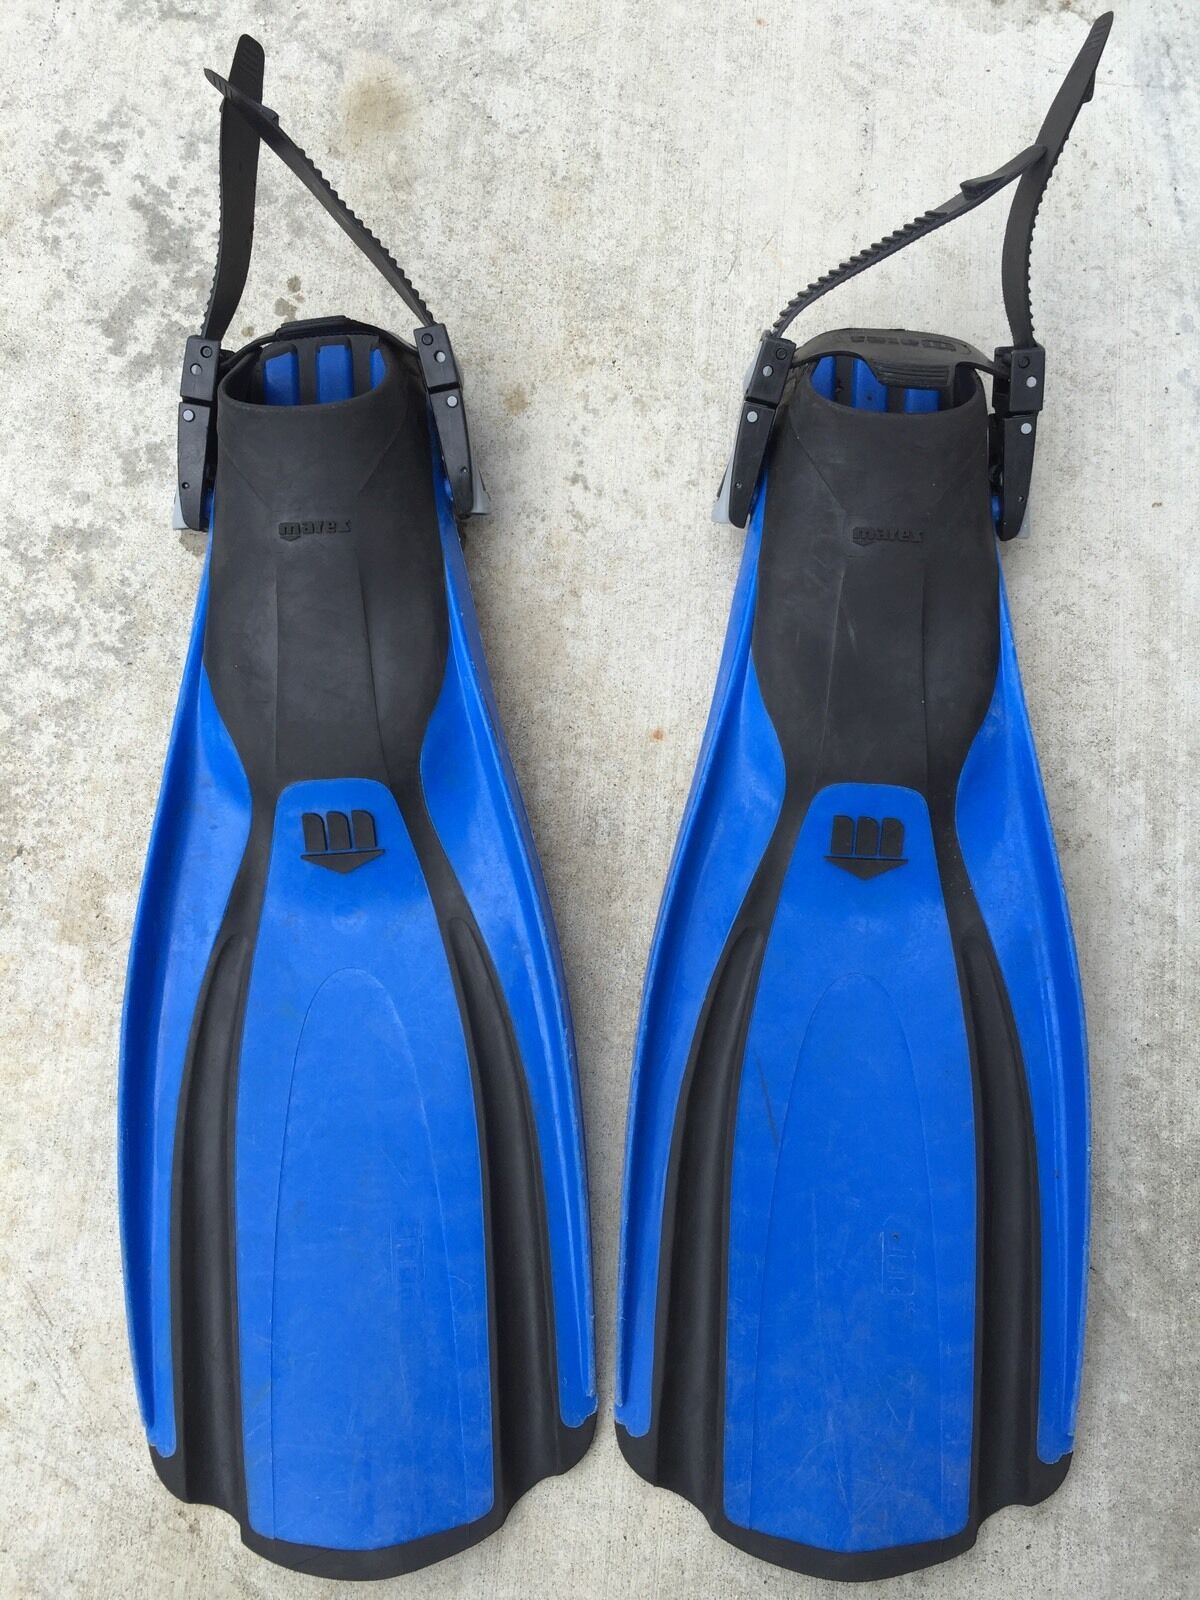 blueee Mares Plana Avanti  Fins Flippers Size Regular Pre Owned  free shipping & exchanges.